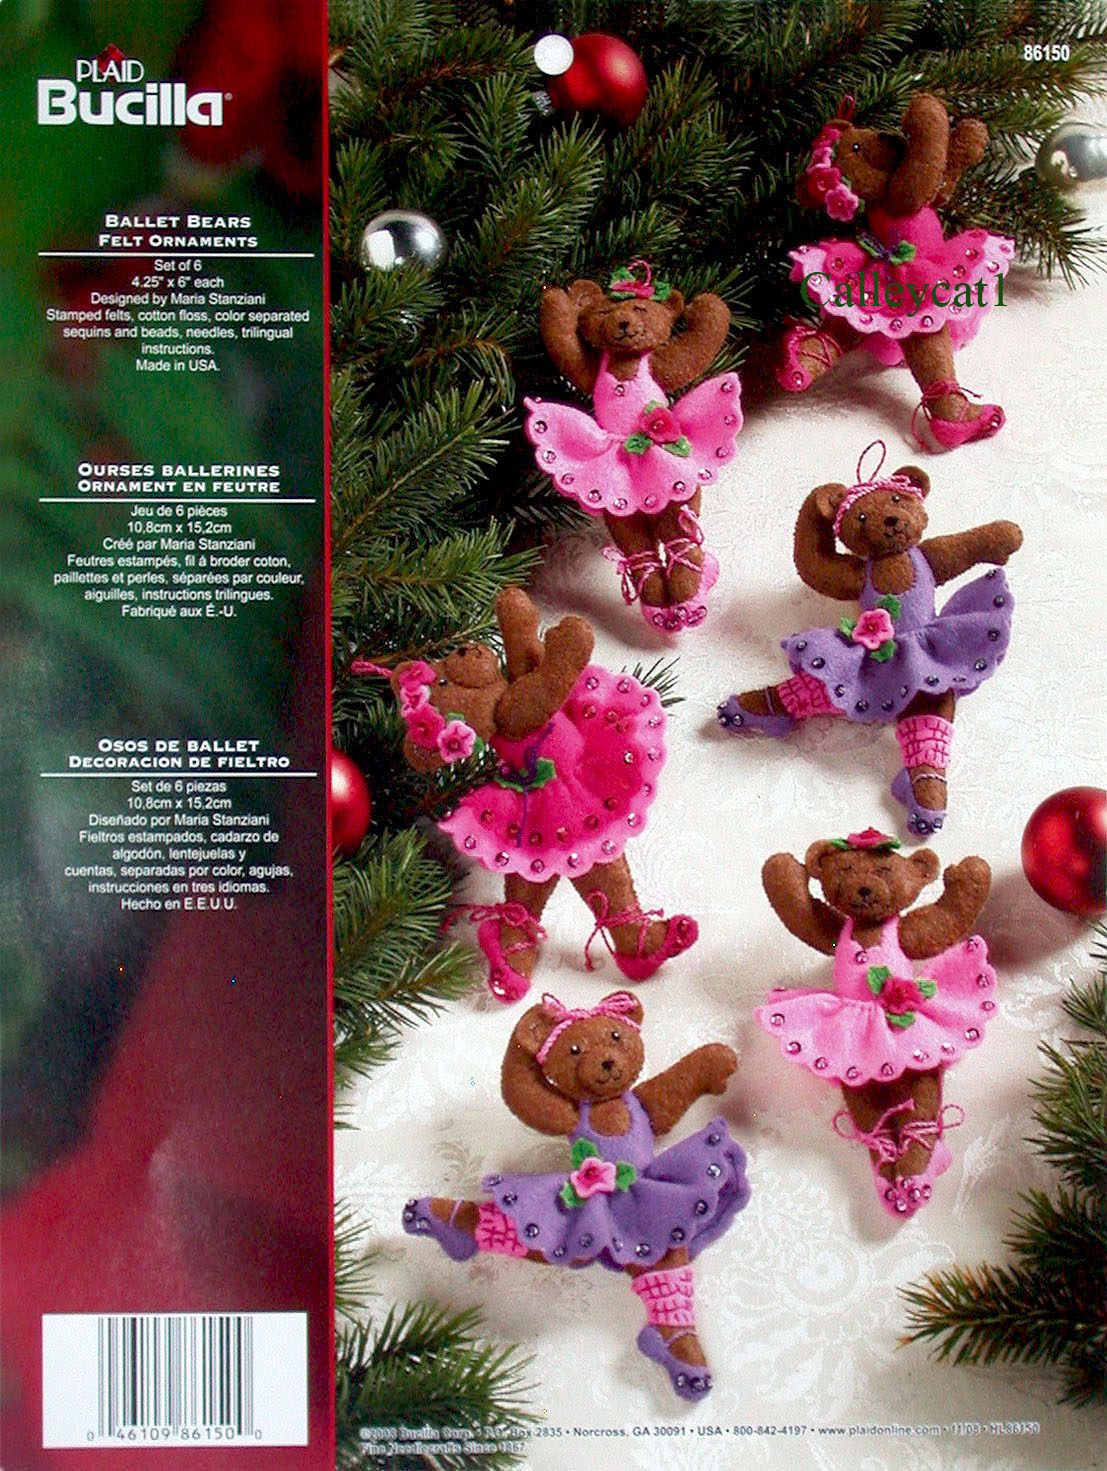 ballet bears bucilla felt ornament kit 86150 - Christmas Tree Decoration Kits